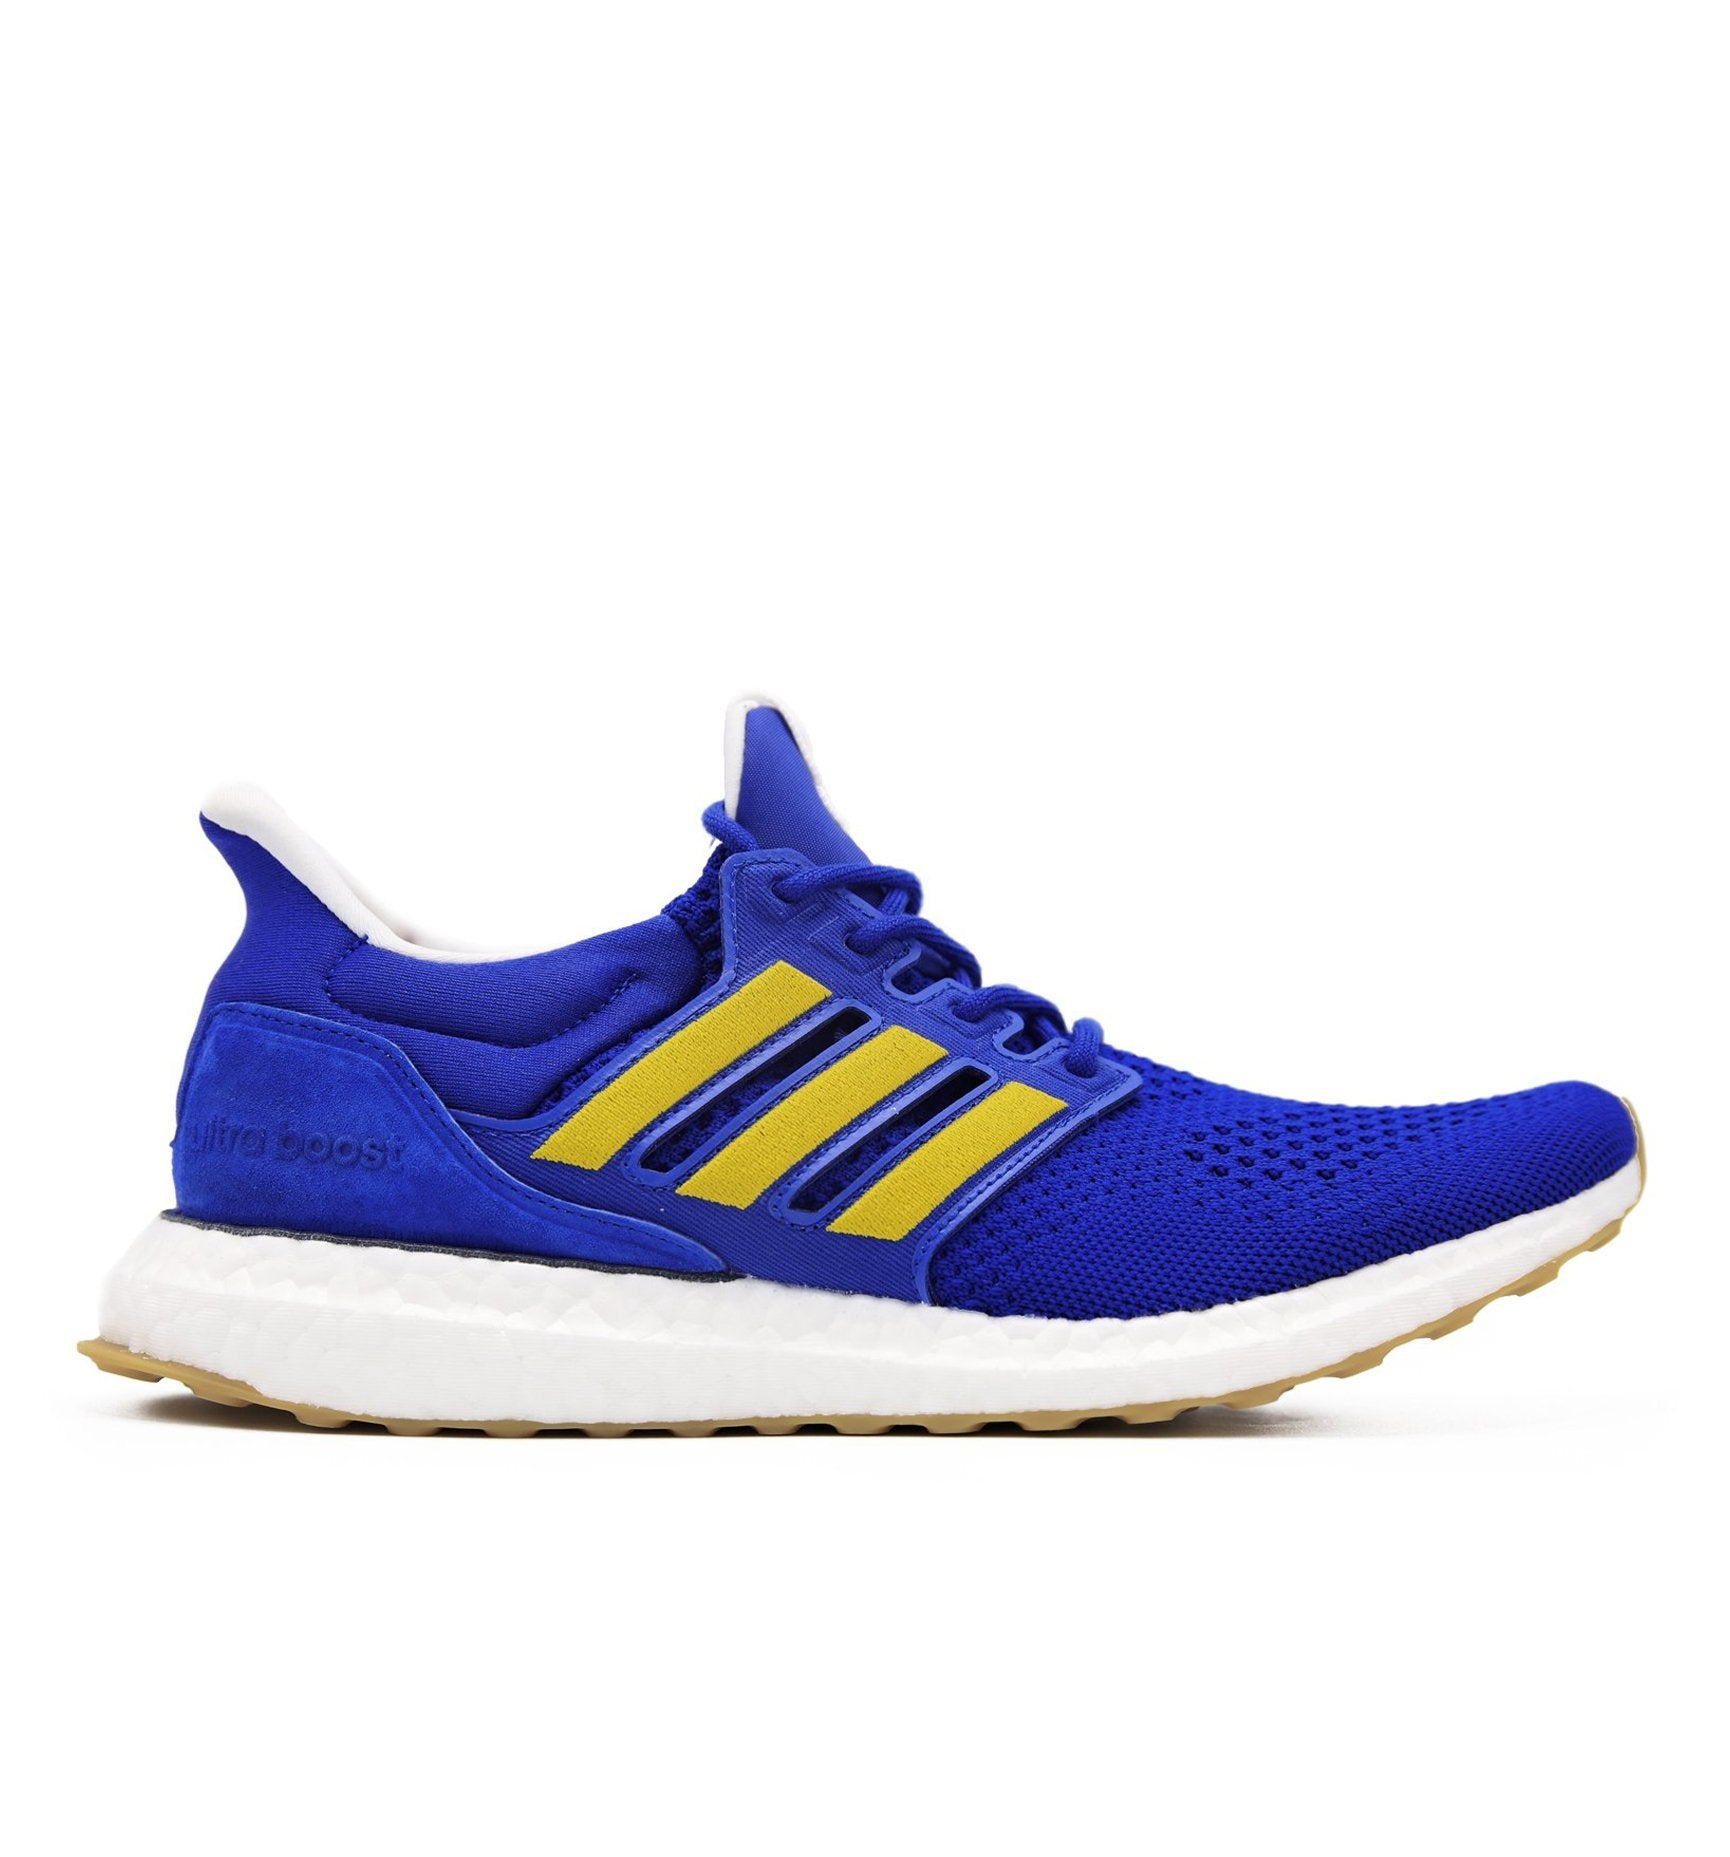 adidas x Engineered Garments UltraBOOST - Blue